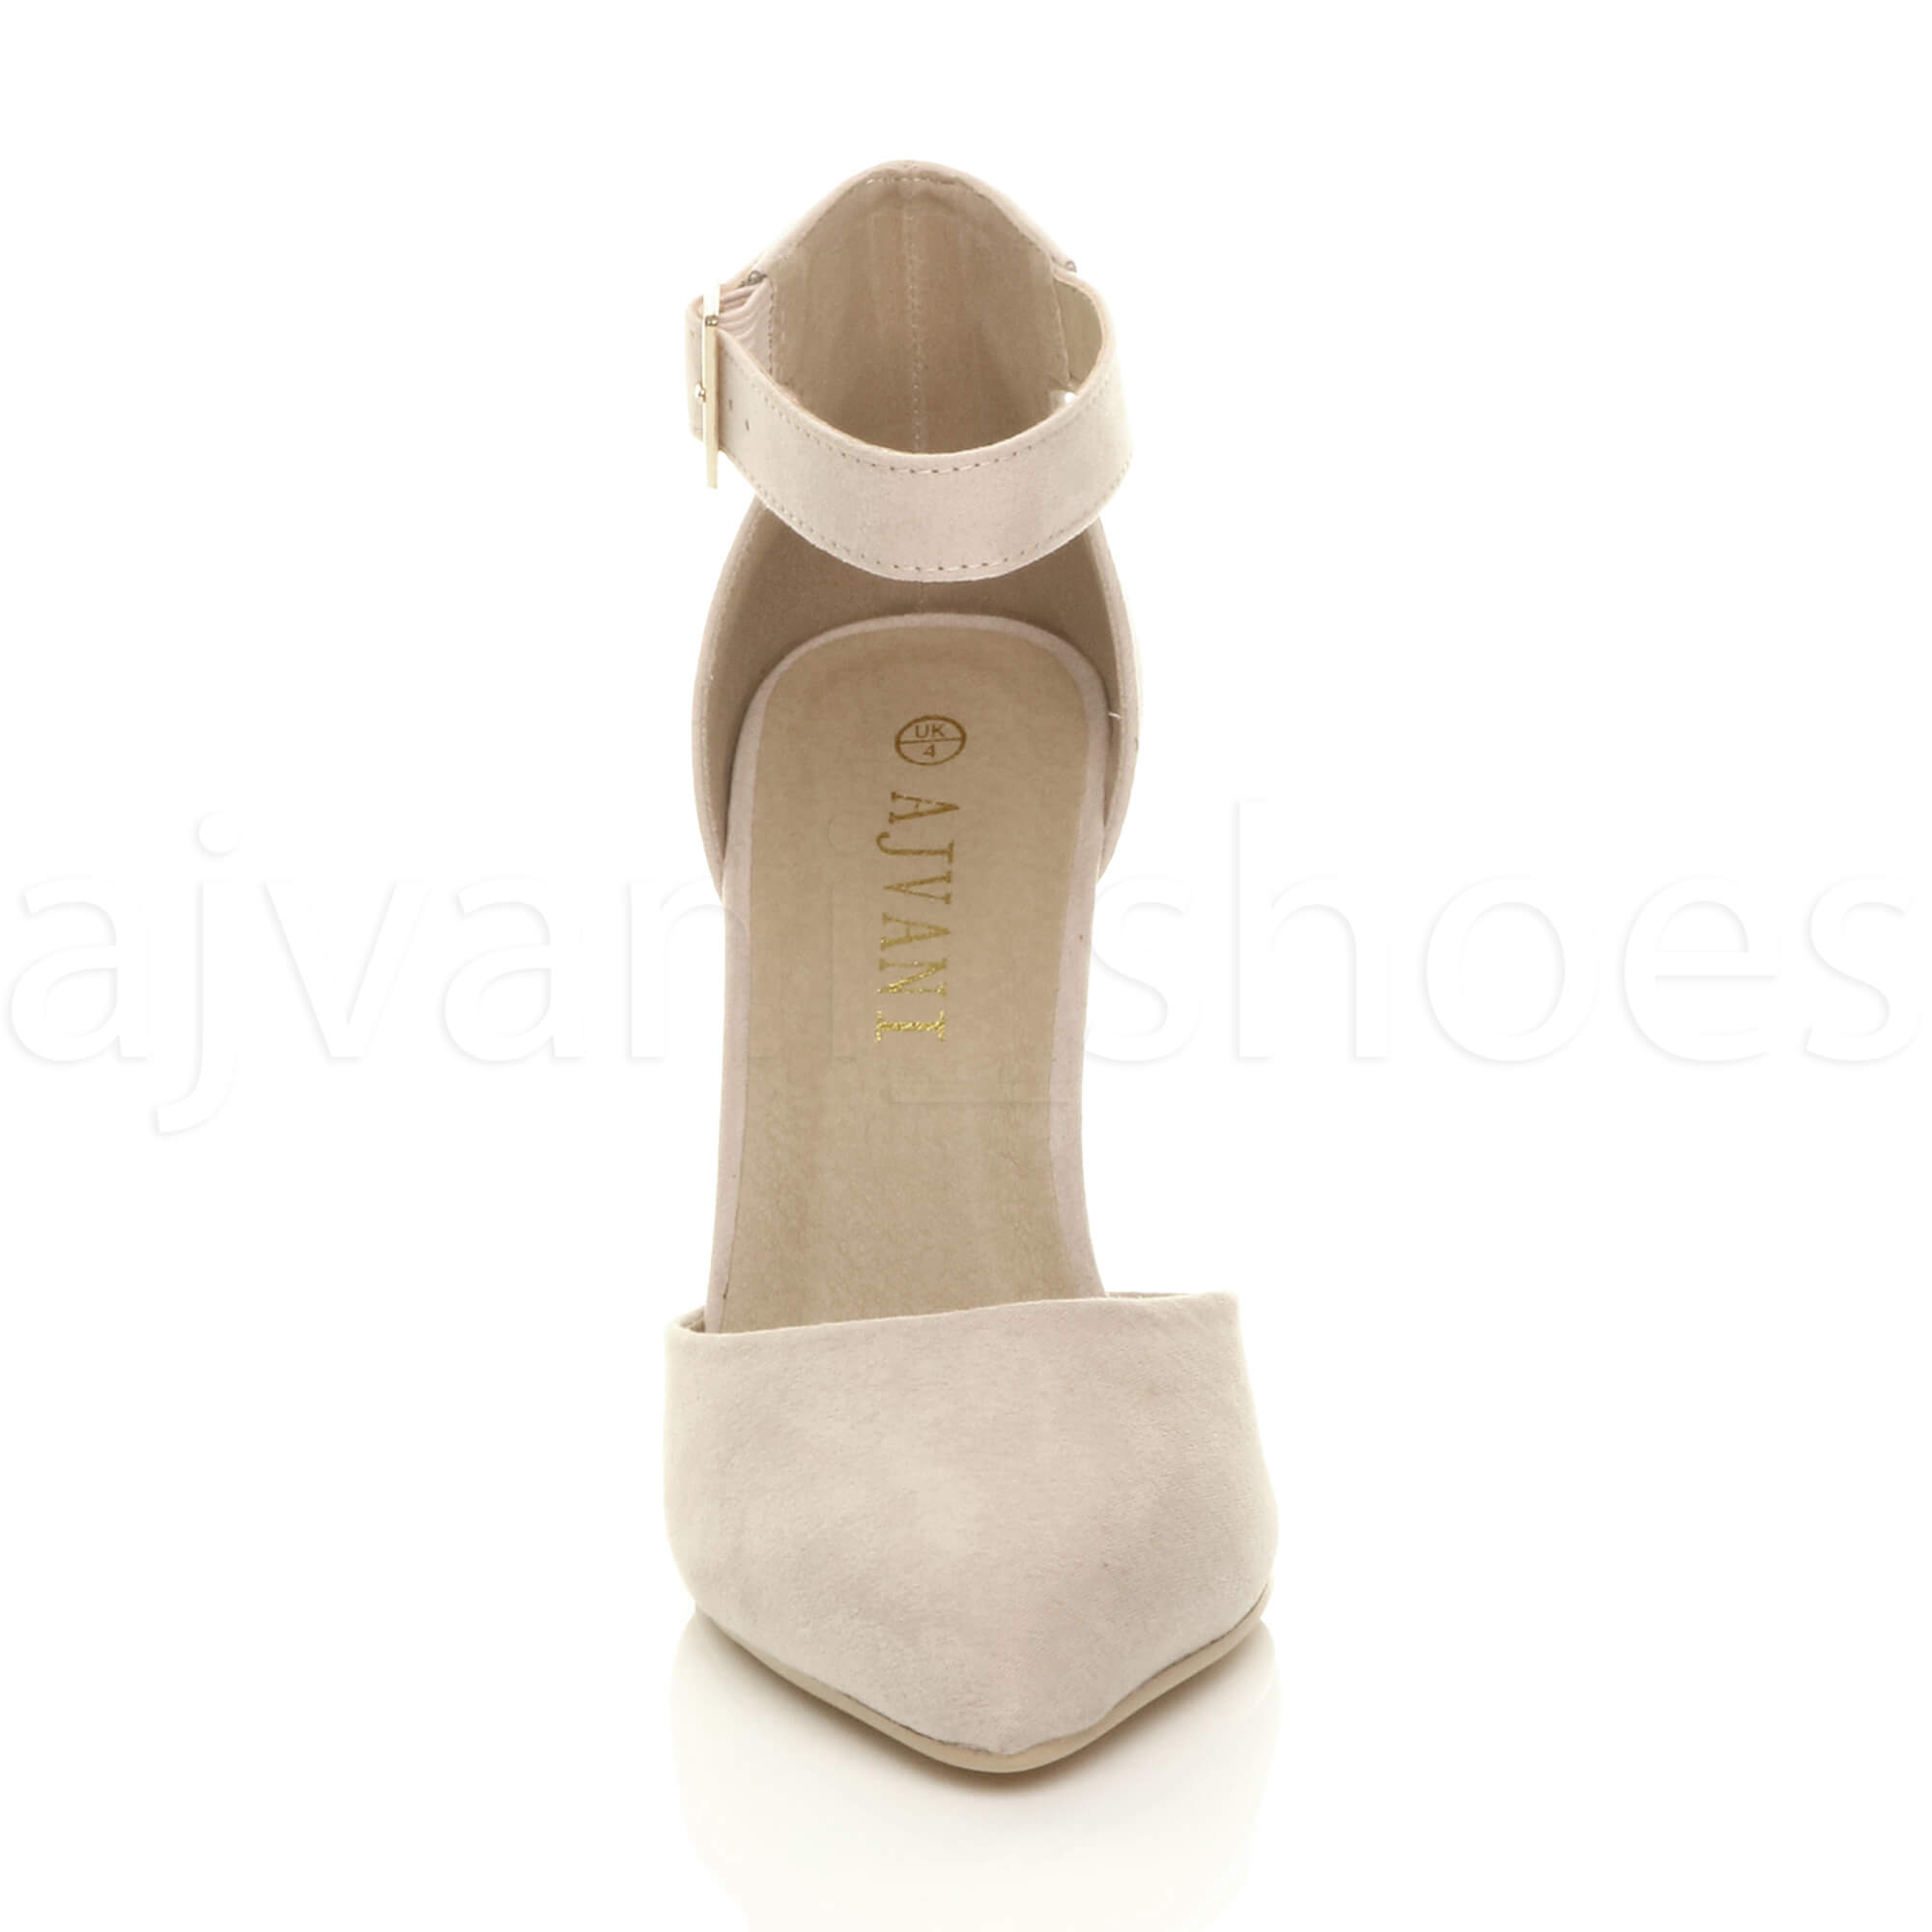 WOMENS-LADIES-HIGH-BLOCK-HEEL-ANKLE-STRAP-BUCKLE-POINTED-COURT-SHOES-SIZE thumbnail 6